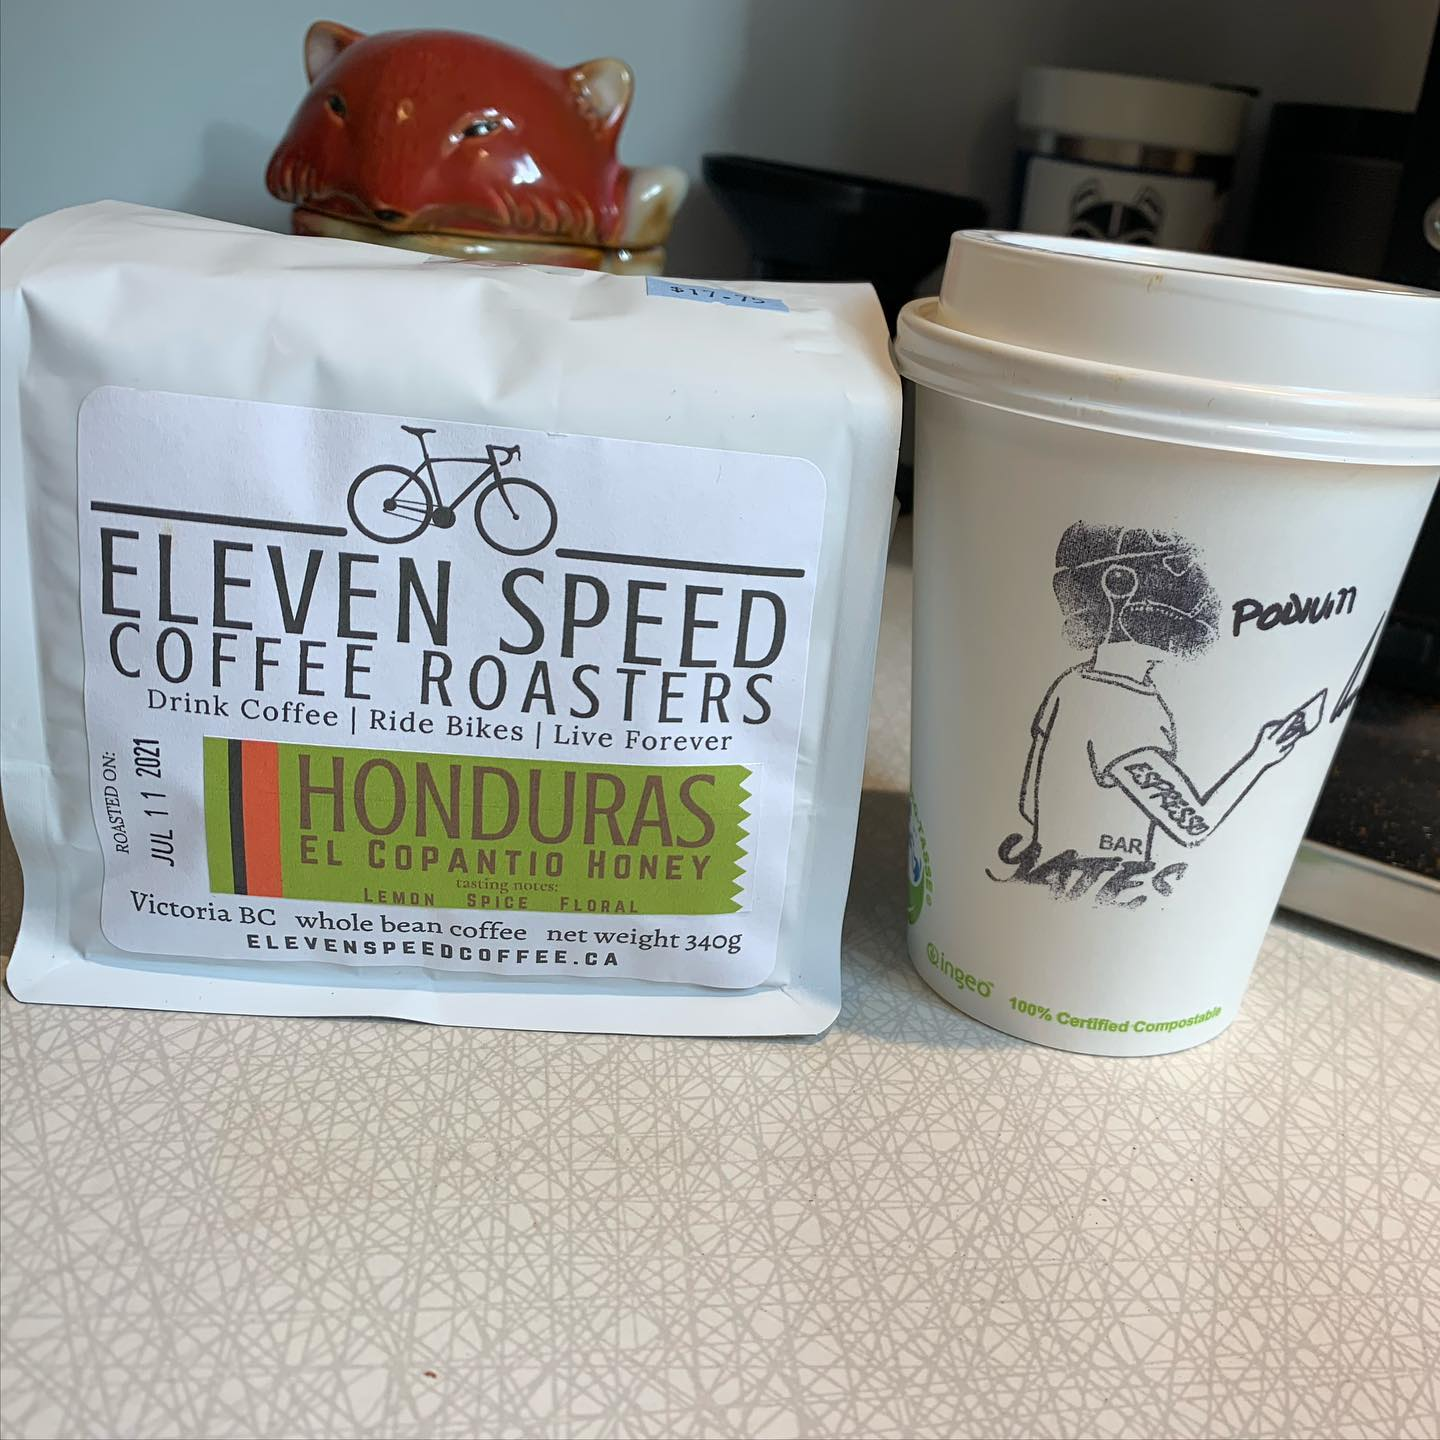 Two bridge crossings in two days. Who could have imagined it? Today's was a mission to get some more @elevenspeedcoffee from @dolcevitayates #coffee #yyjcoffee #local #localbusiness